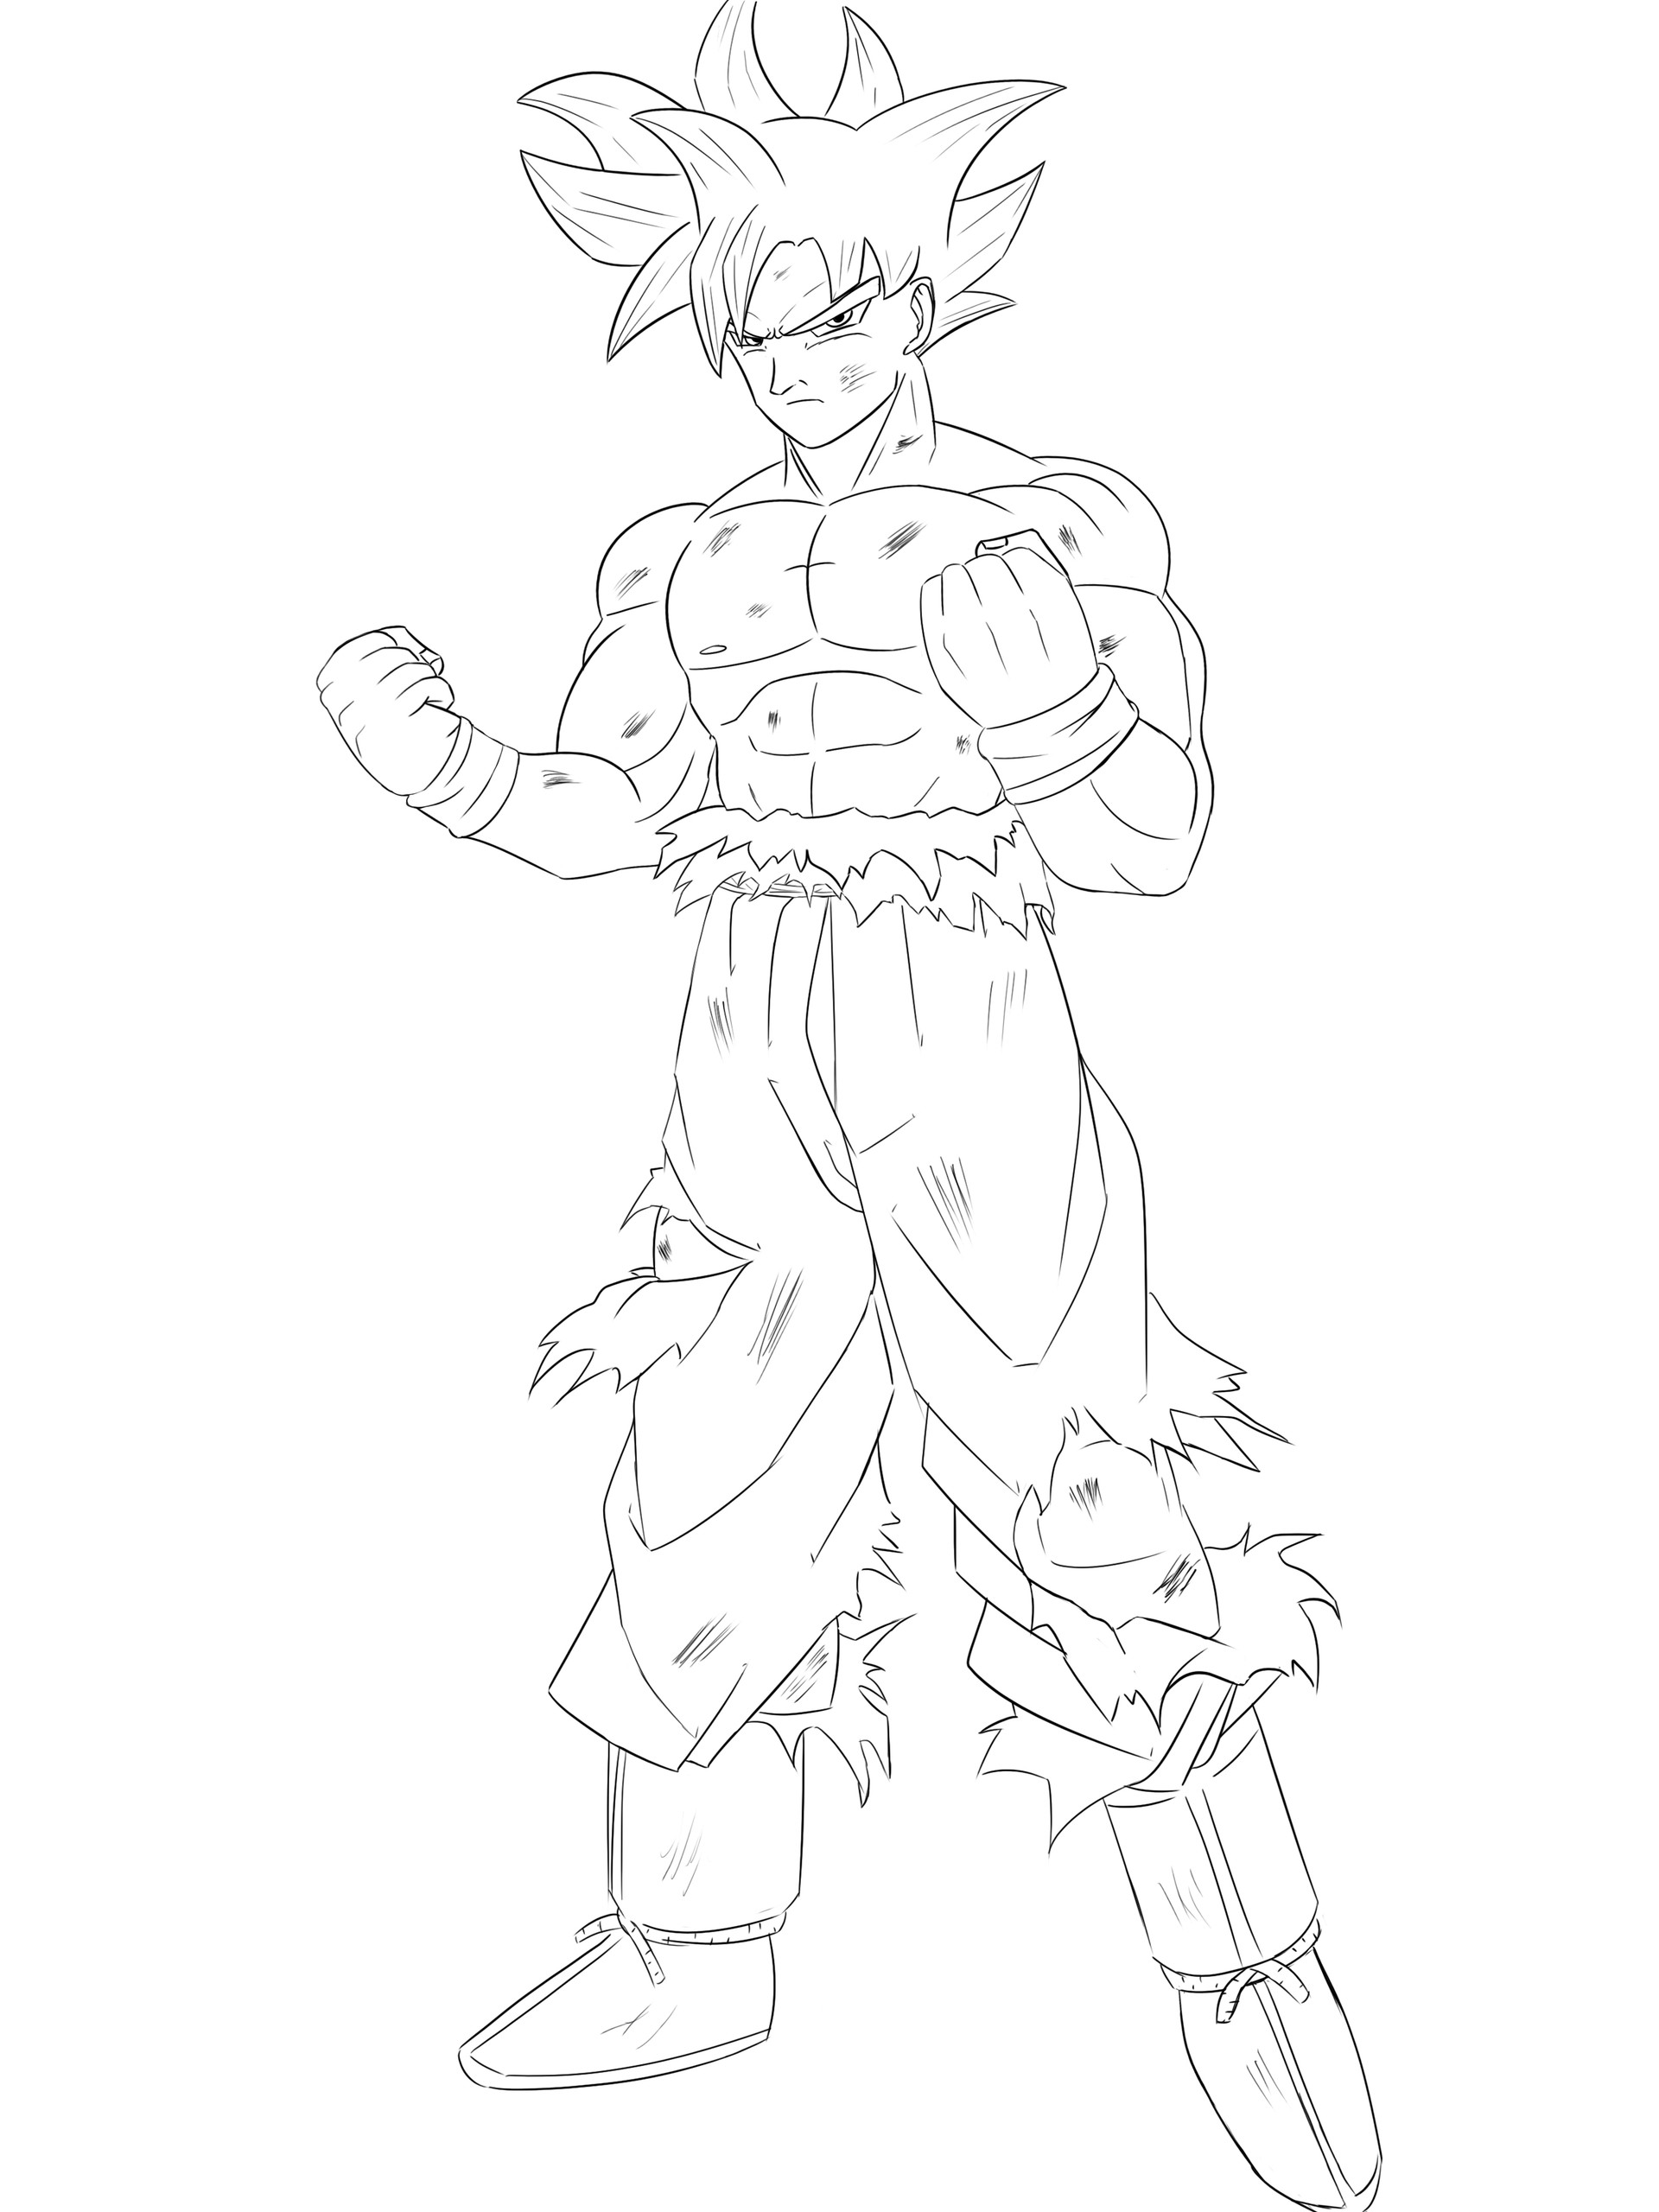 Drawing Mastered Ultra Instinct Goku Dragon Ball Super Art